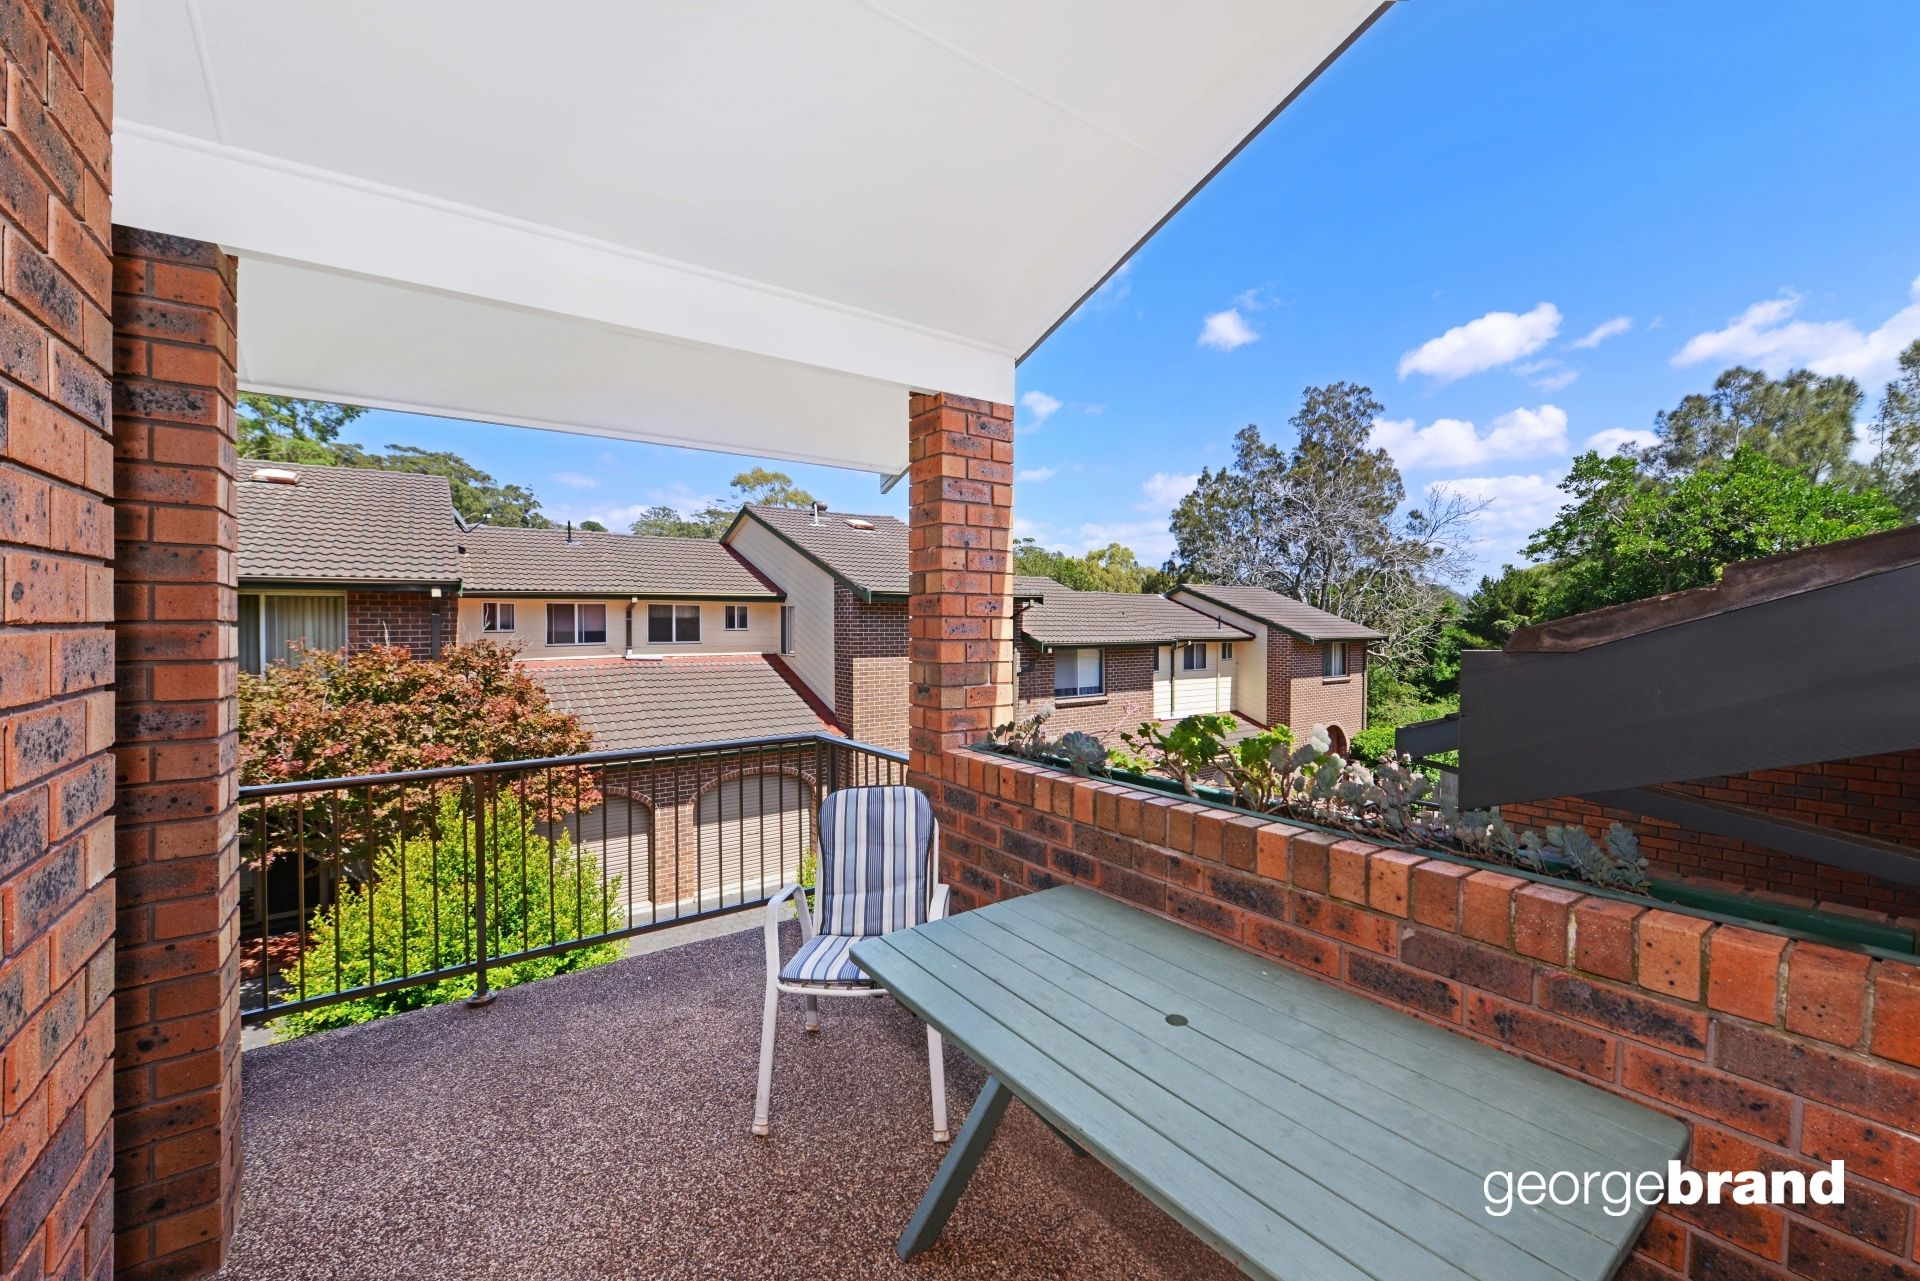 Avoca Beach Real Estate: MUST BE SOLD!